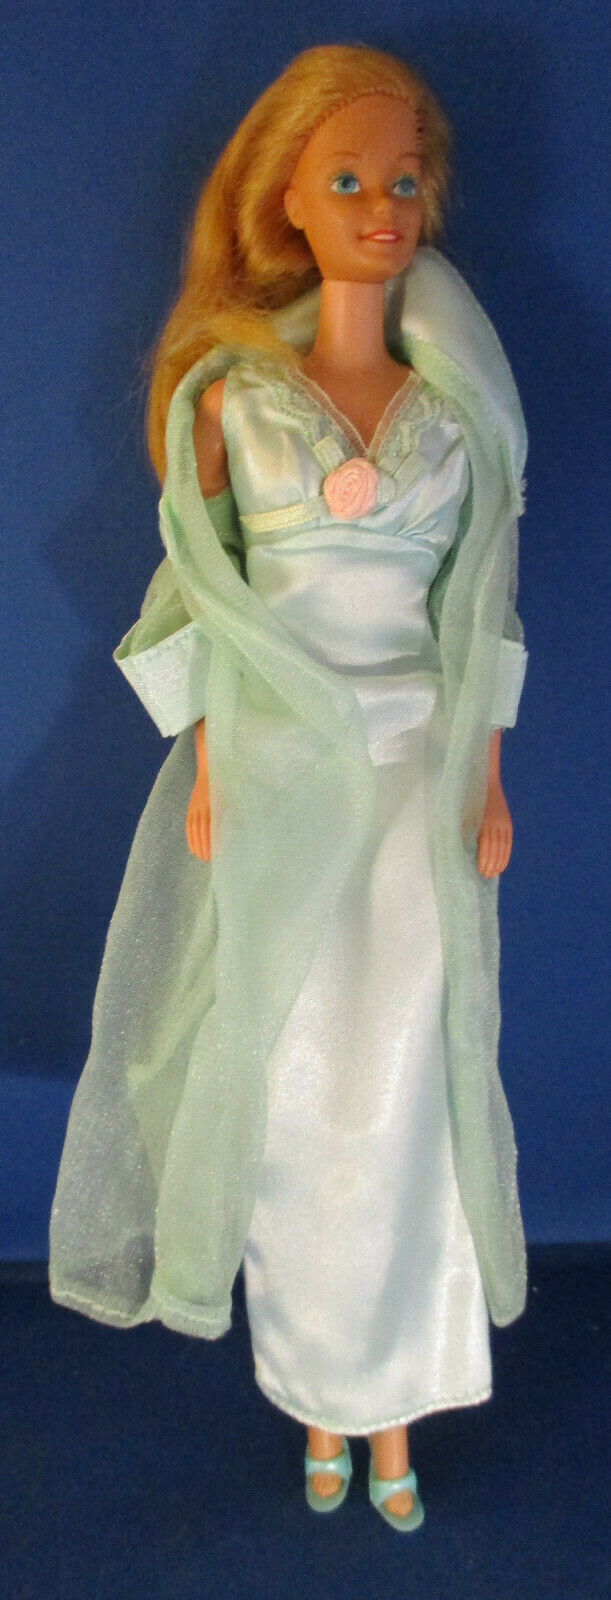 Mattel Barbie Doll 1966 in Green Nightgown and Green Organza Robe and Heels